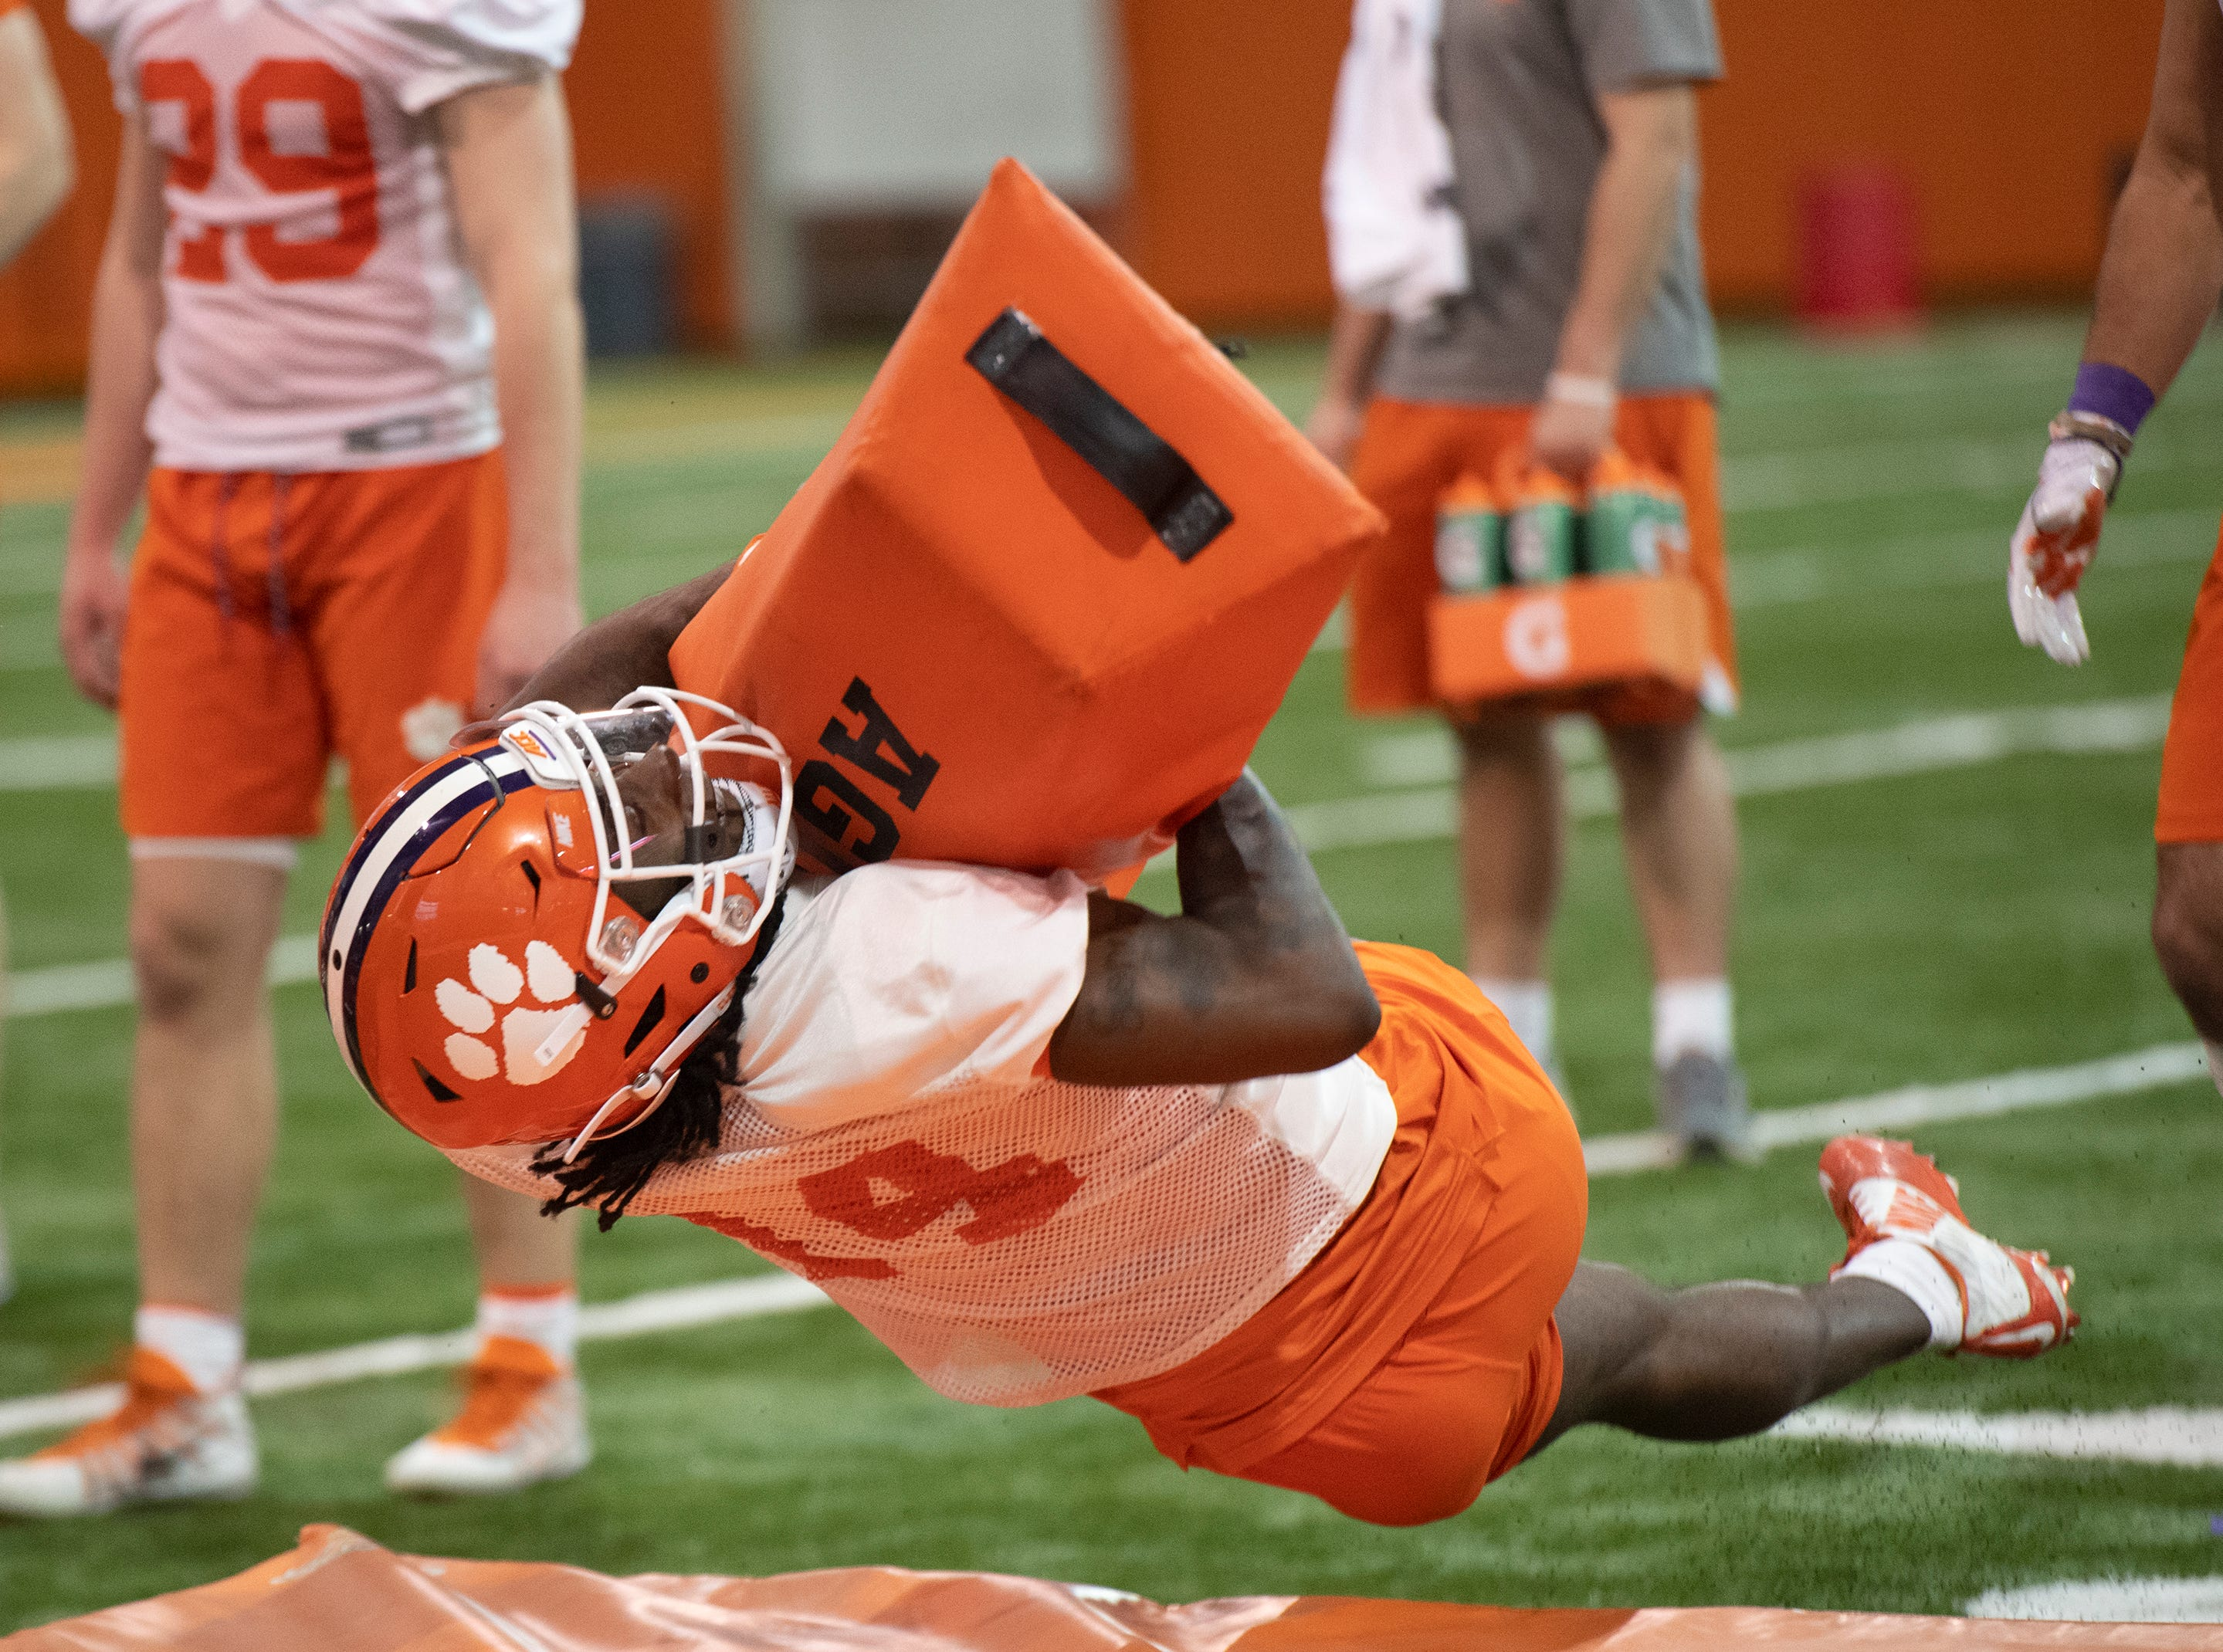 Clemson safety Denzel Johnson (14) works on drills during football practice at the Poe Indoor Football Facility Friday, Mar. 1, 2019.